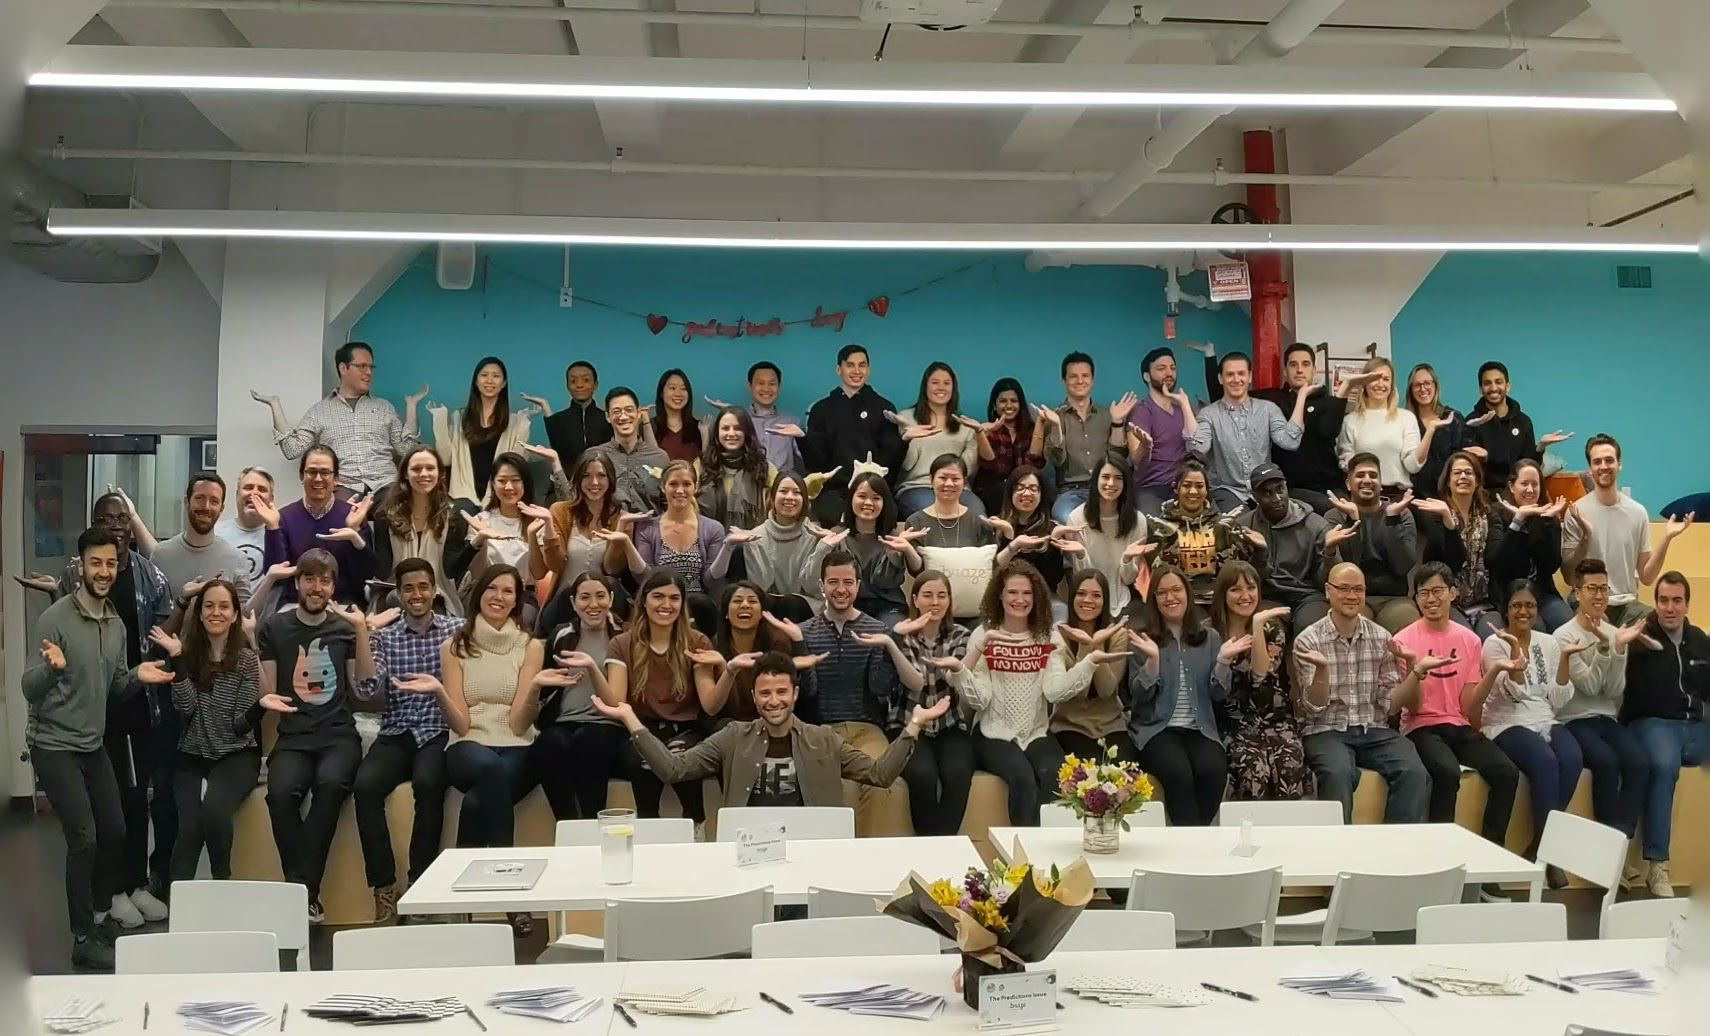 Happy #InternationalWomensDay from our NYC, San Francisco, London, and Singapore teams! We #BalanceForBetter by empowering Braze women in their careers & advocating for a more gender-balanced community. #IWD2019 https://t.co/zq1Kxvj3Xo